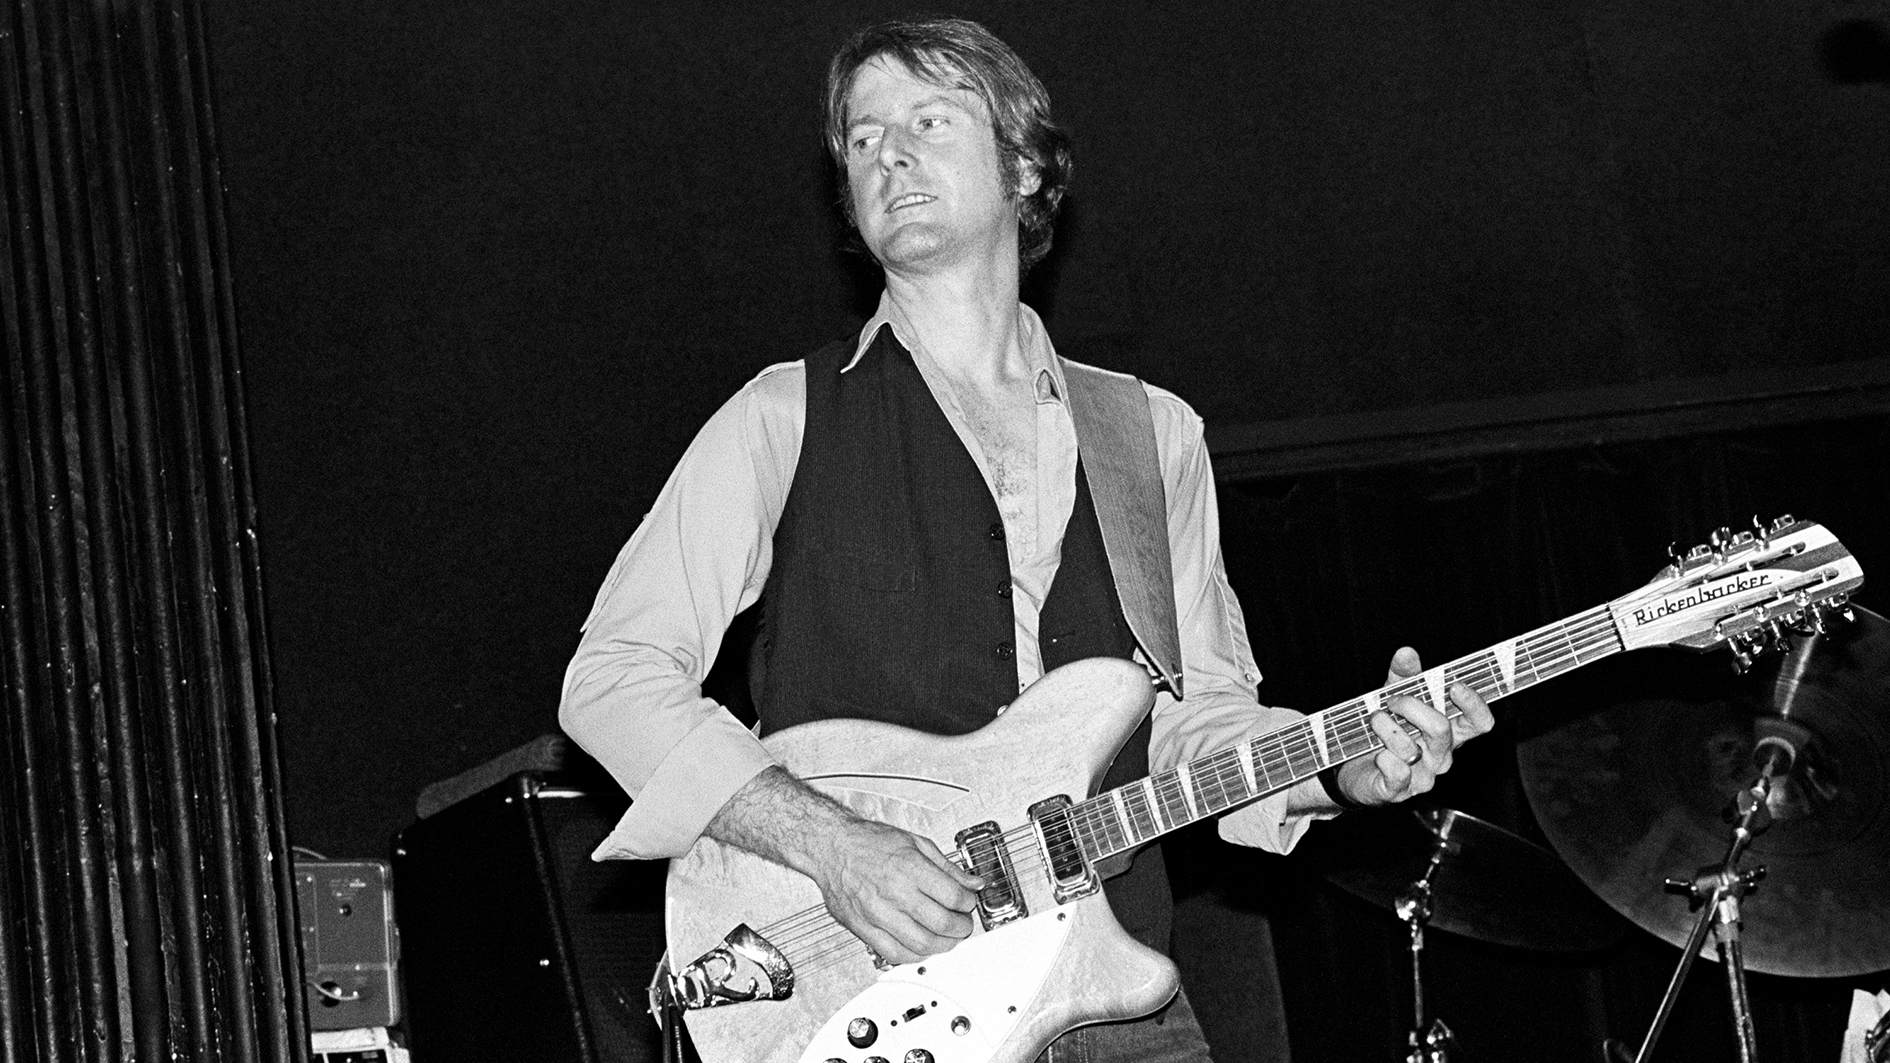 Why The Byrds' Roger McGuinn is one of rock's greatest guitar heroes